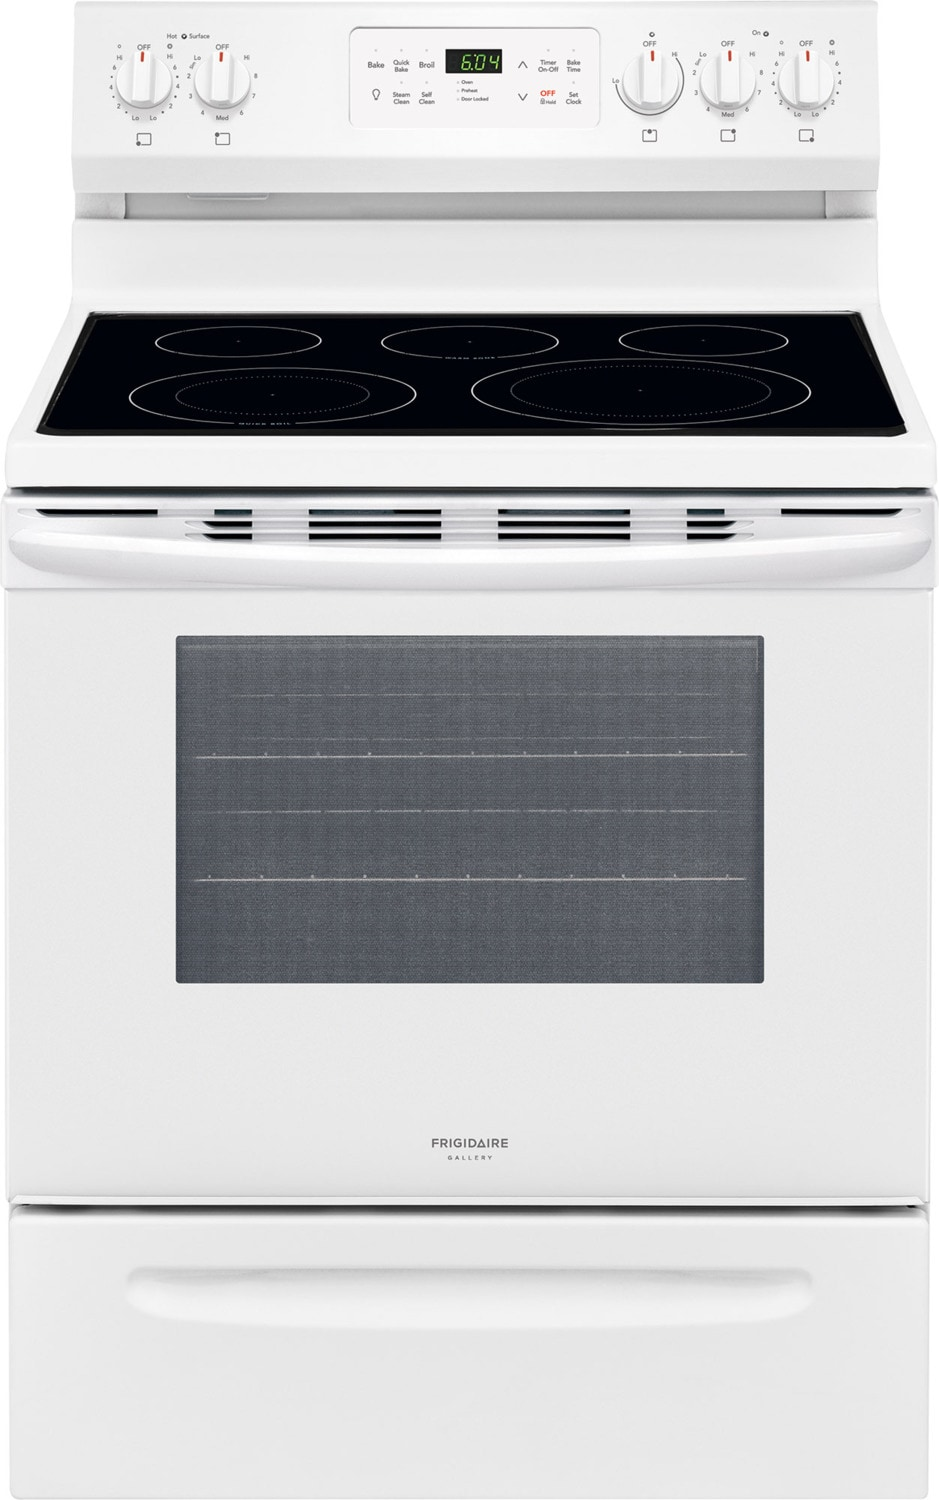 Frigidaire Gallery White Freestanding Electric Convection Range (5.4 Cu. Ft.) - CGEF3037TW